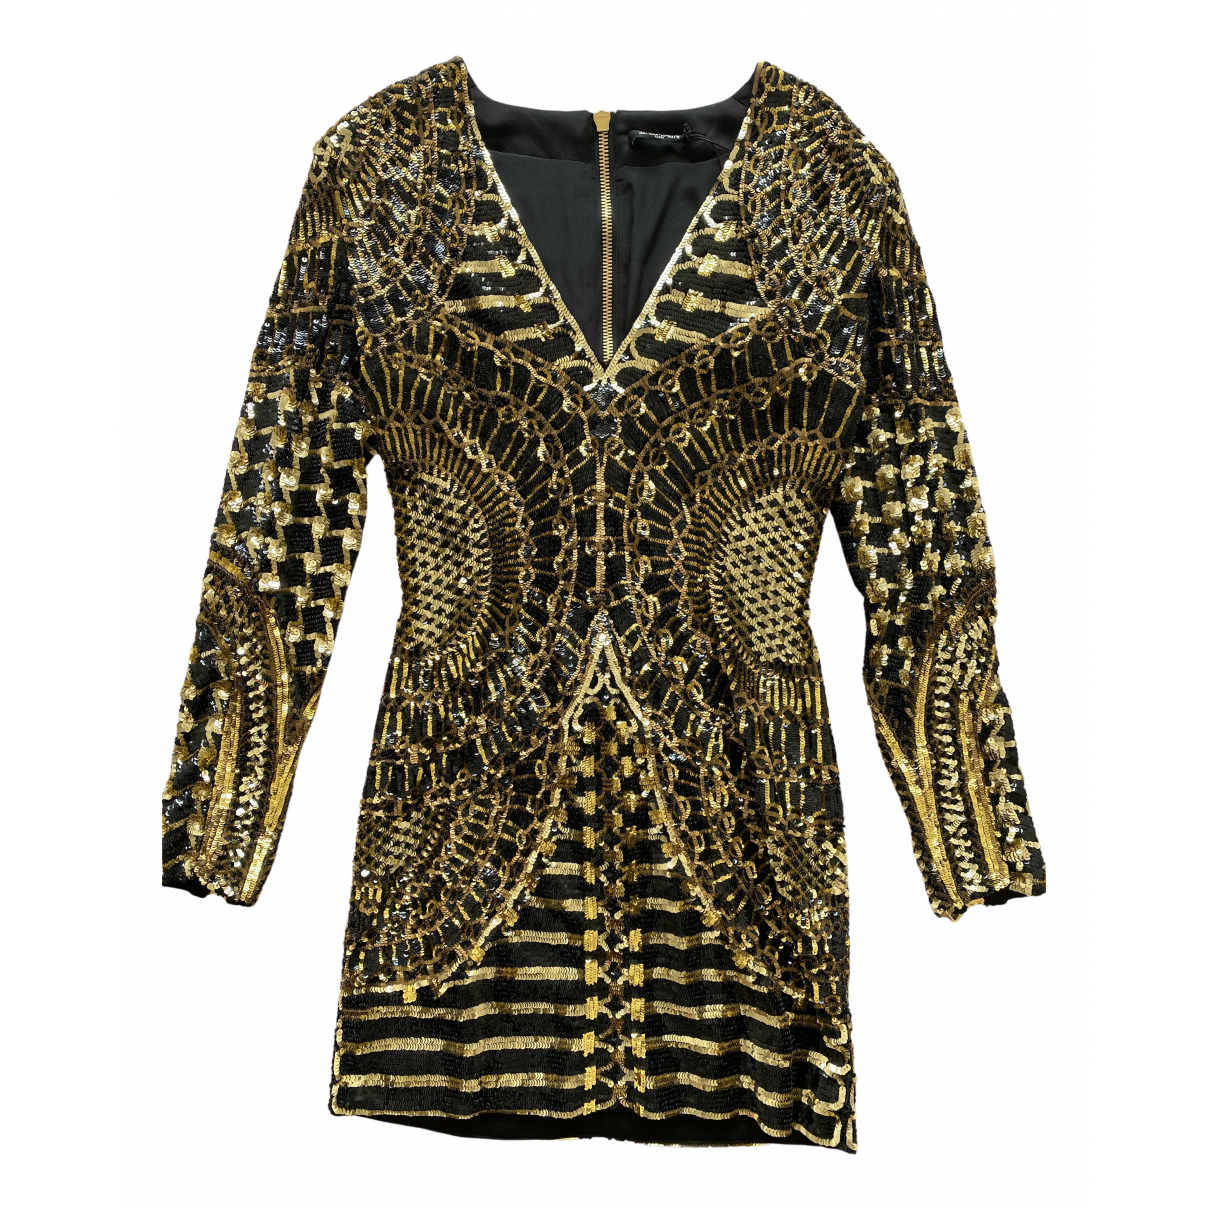 Balmain \N Kleid in  Gold Mit Pailletten